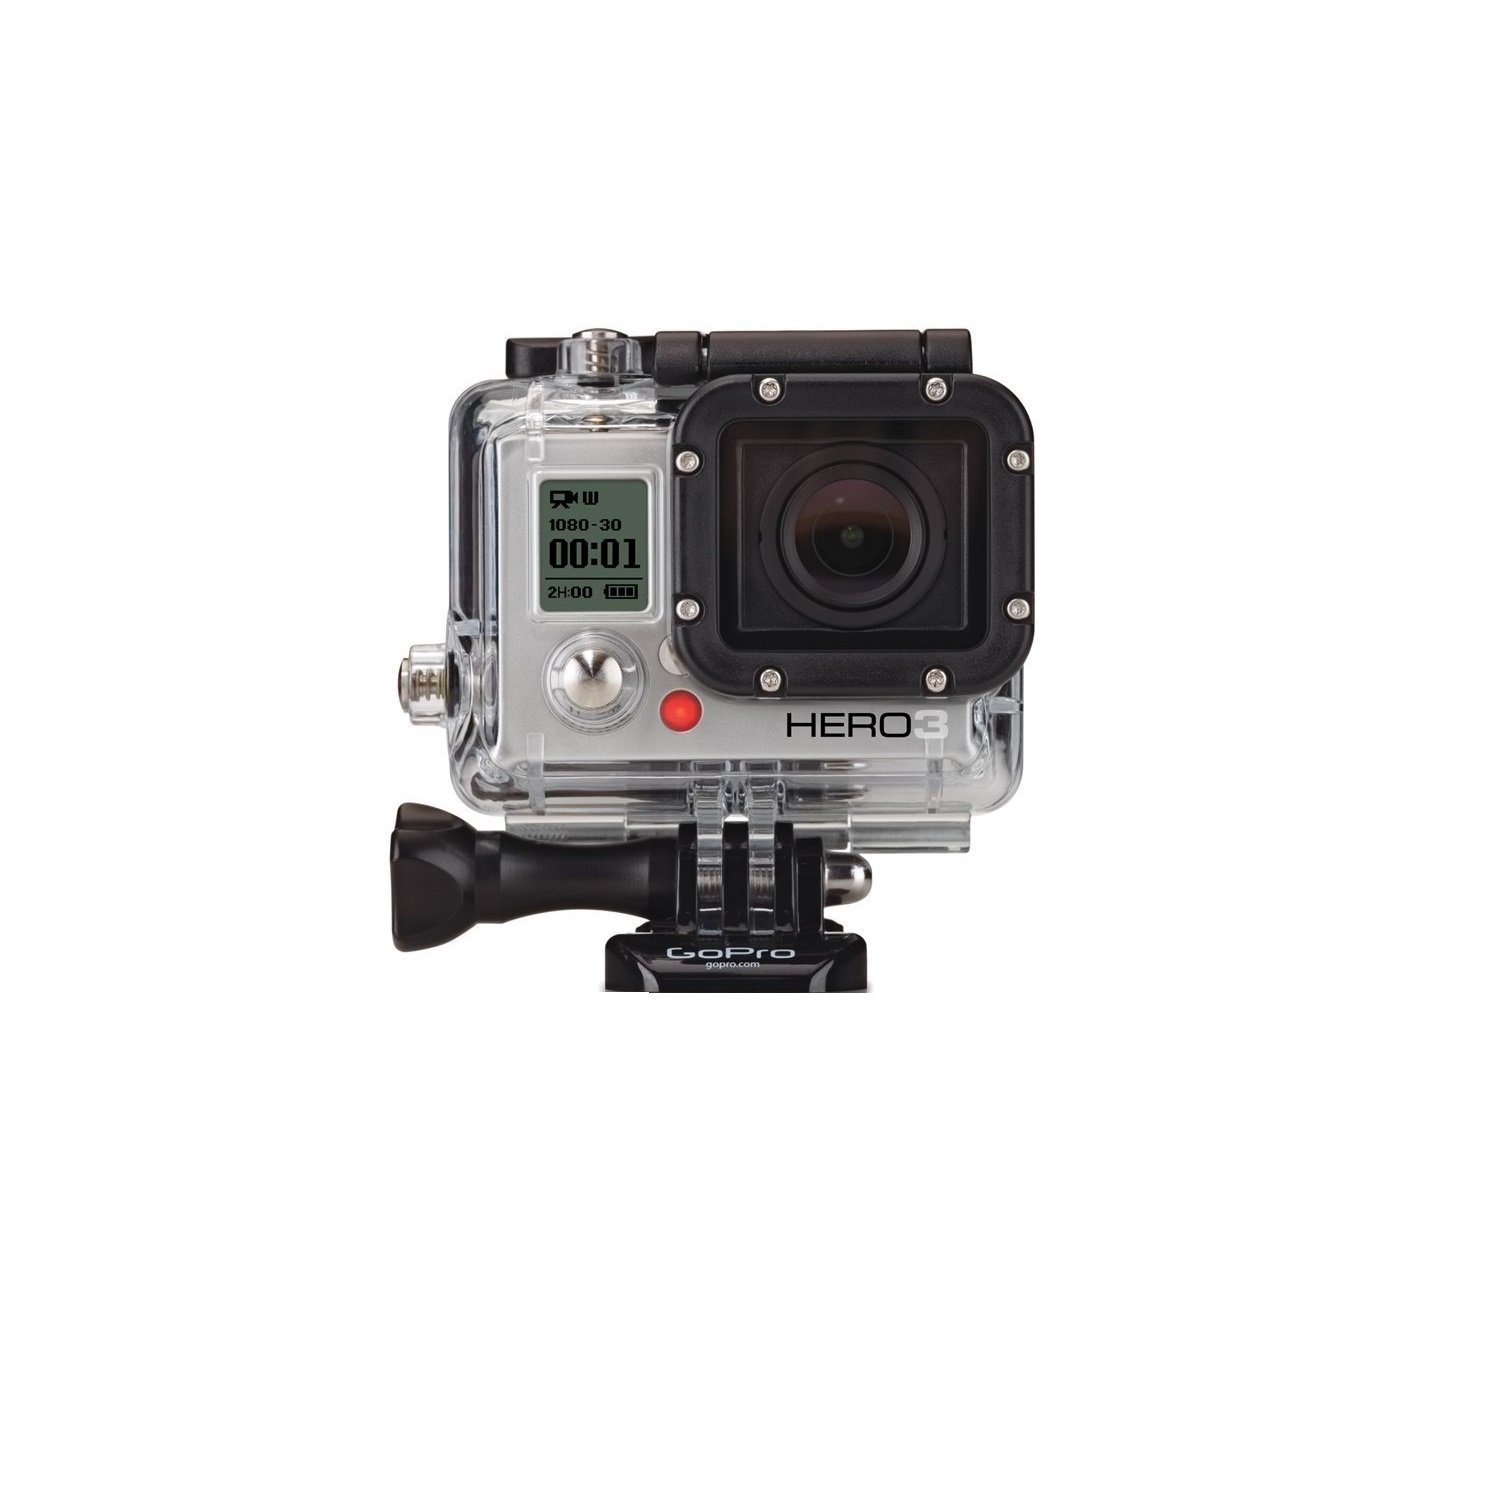 BARGAIN GoPro Hero 3 Camcorder White Edition Just GBP149